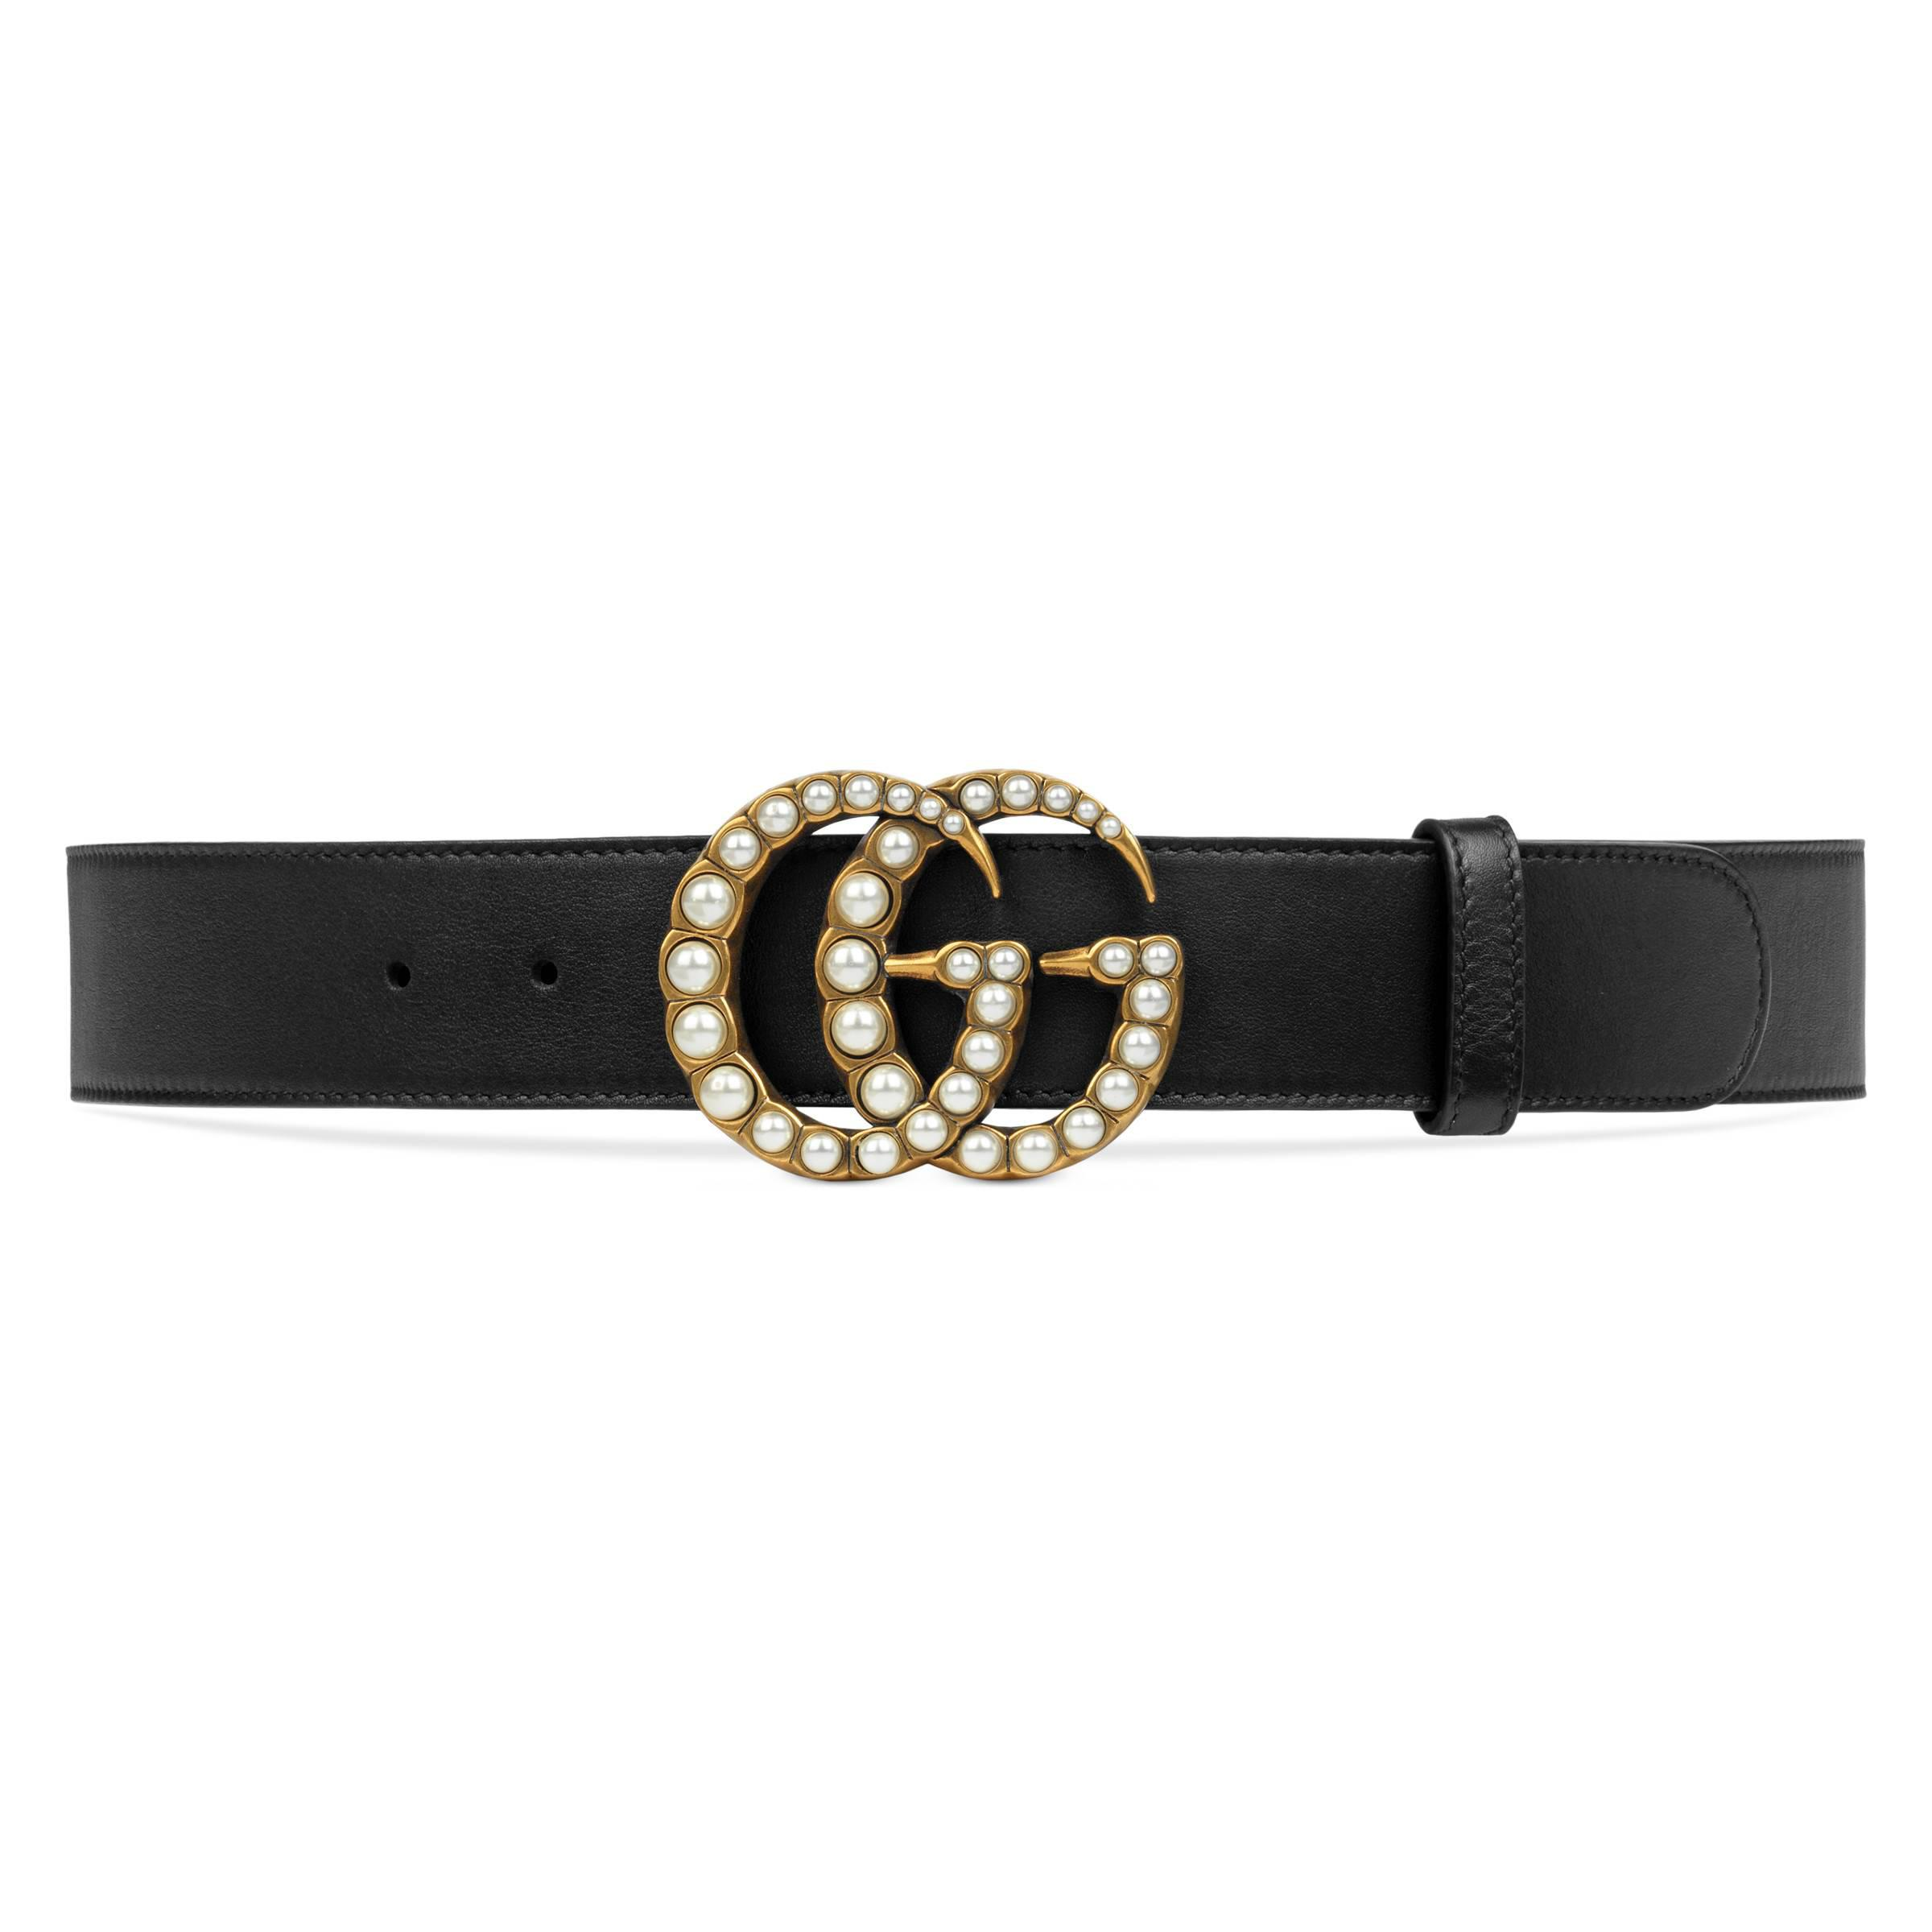 2c20d32a672 Gucci Leather Belt With Pearl Double G in Black - Save 10% - Lyst